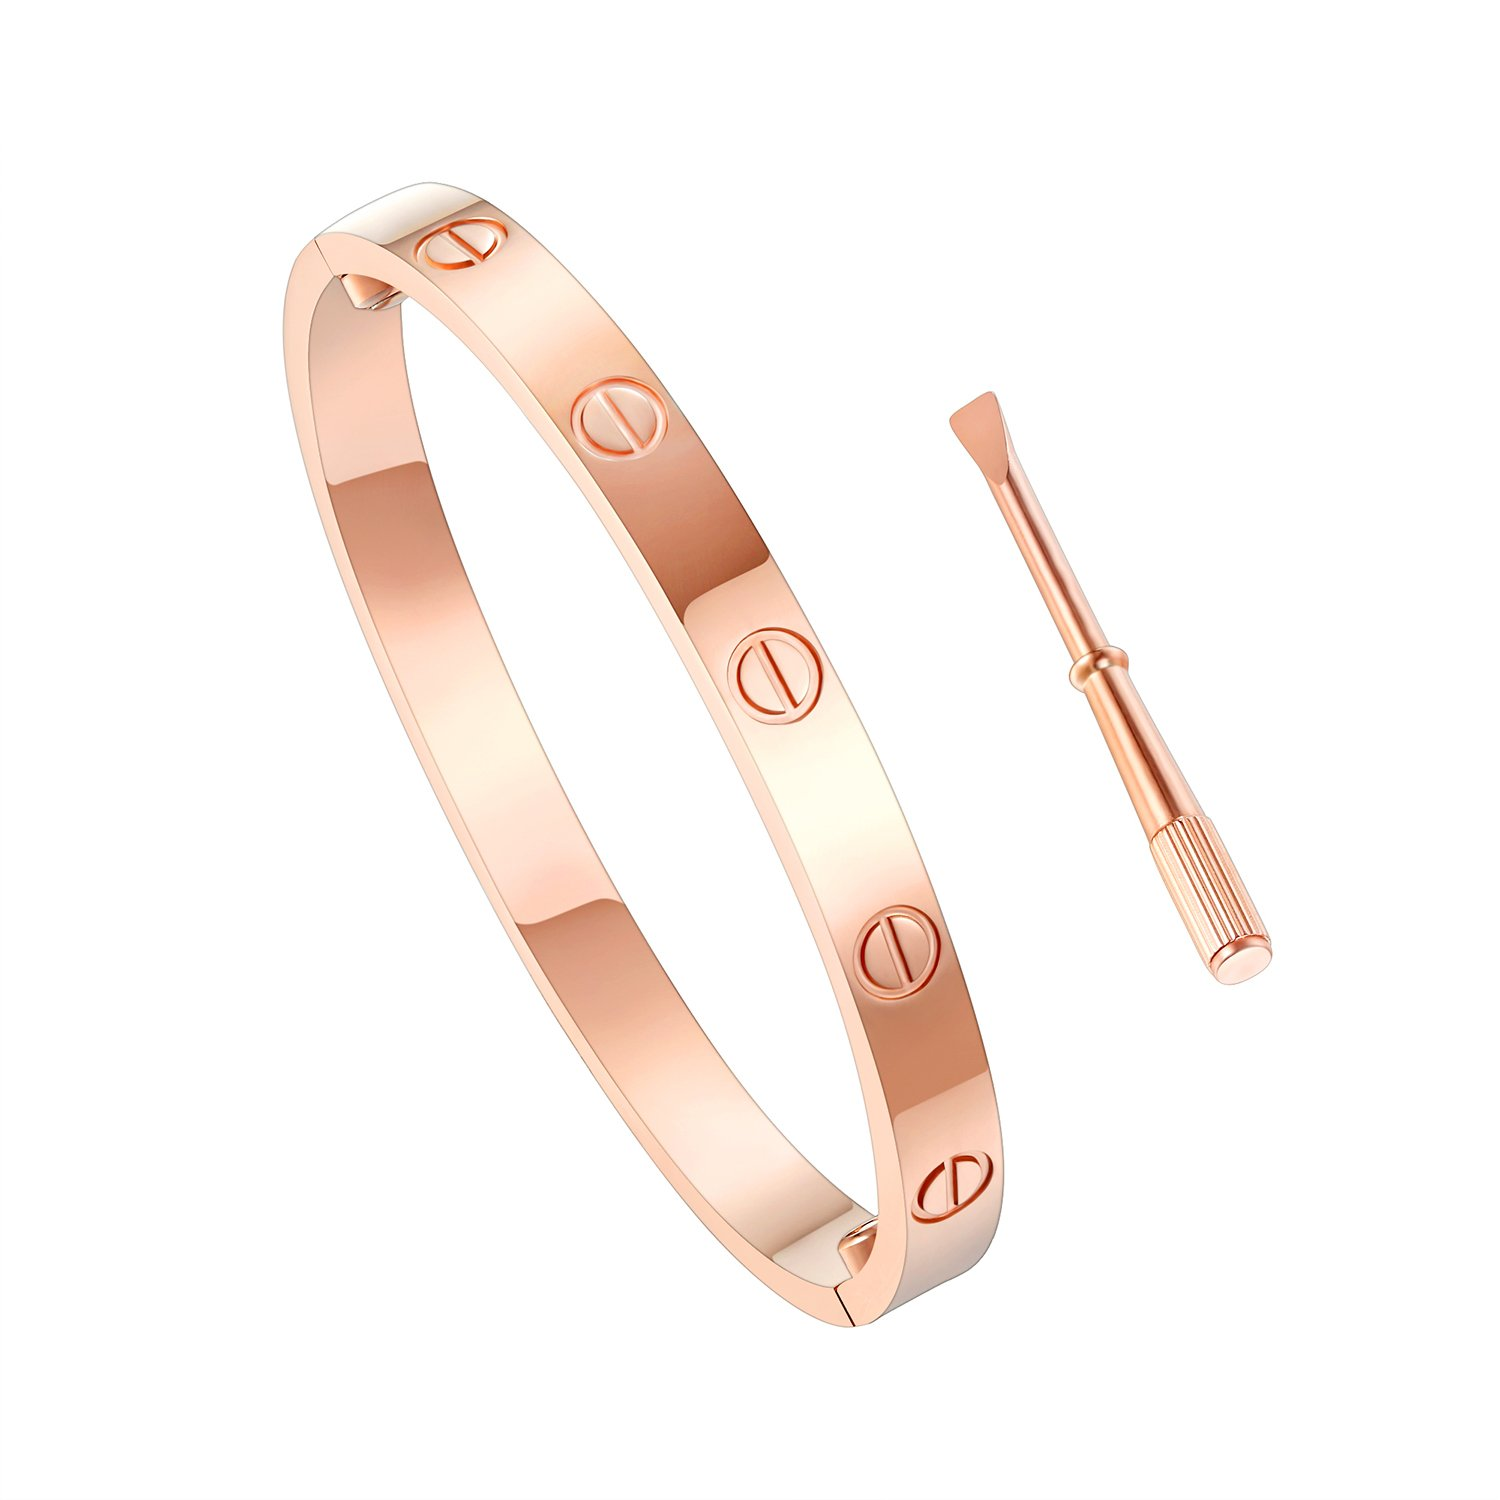 Z.RACLE Love Bangle Bracelet Stainless Steel with Screw - Best Gift for Love - 6.3IN Rose Gold